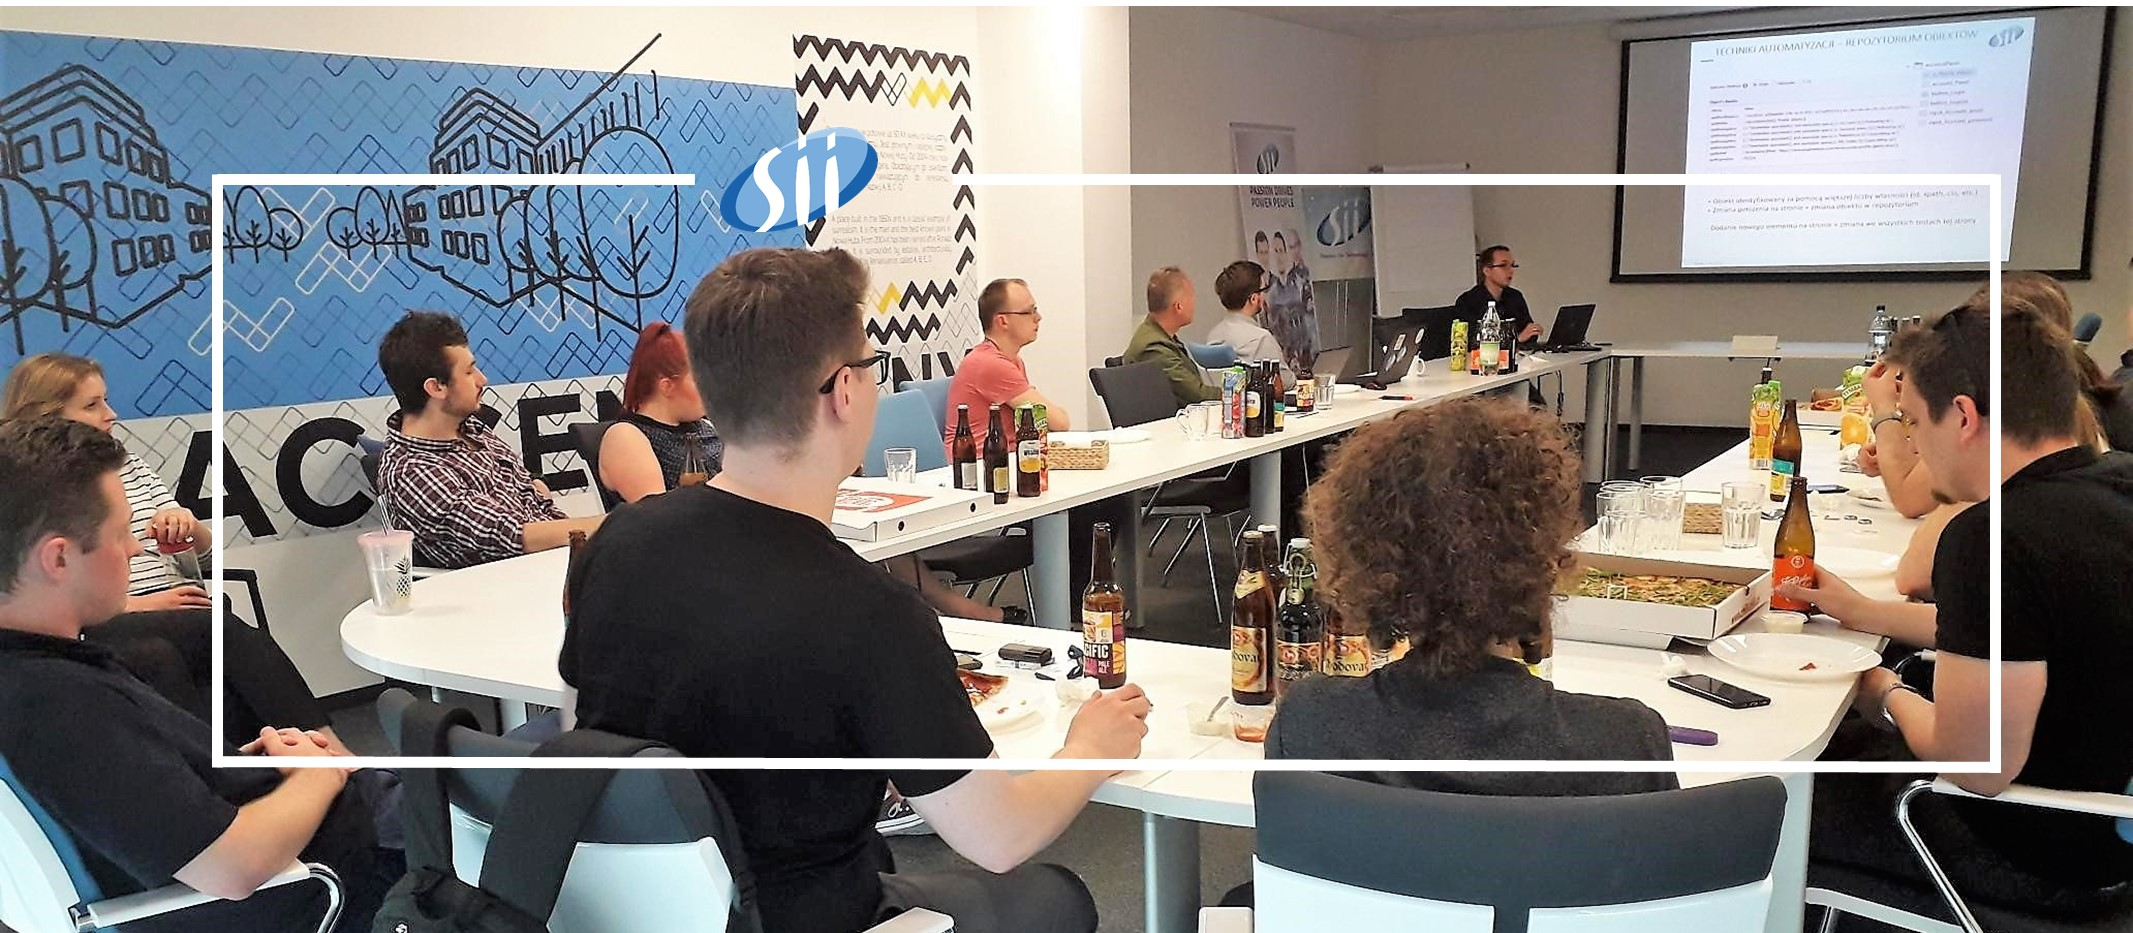 Technical knowledge at your fingertips – Sii organizes a series of meetups throughout Poland